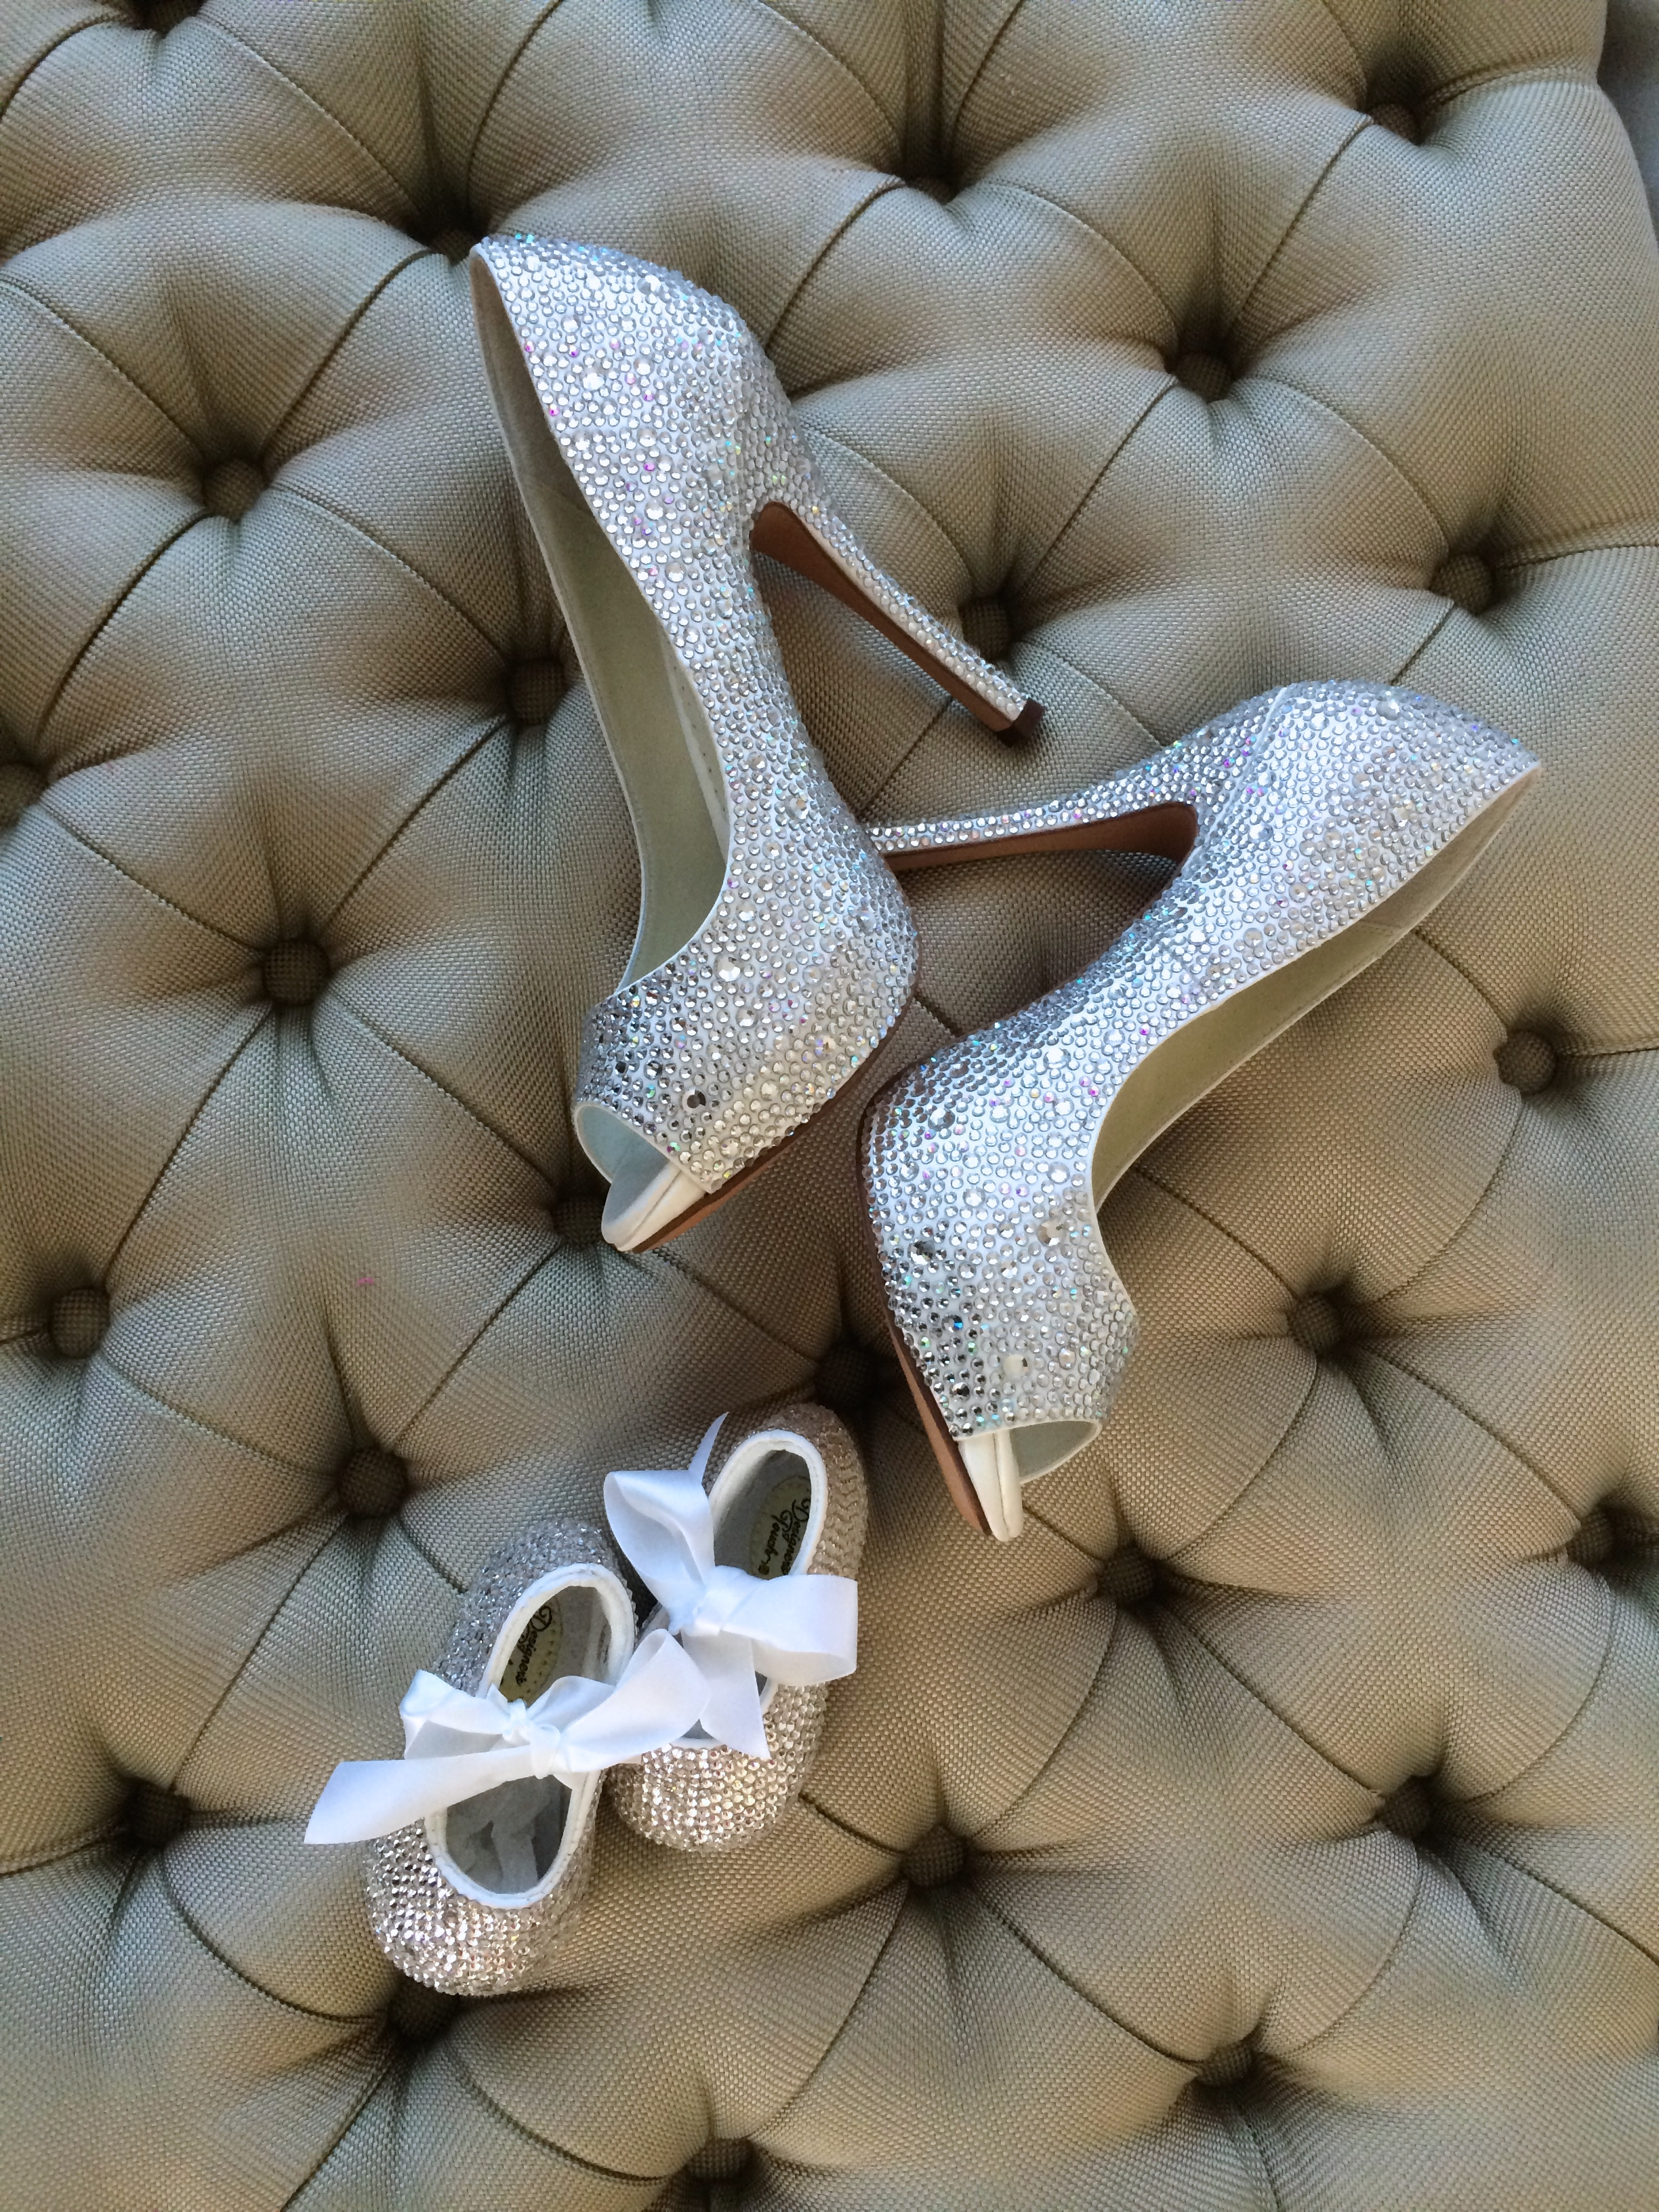 Las Vegas Wedding Planner:  Andrea Eppolito Events  | Las Vegas Wedding Venue:   Caesars Palace  | Floral and Decor:   Naakiti Floral & Sit On This  | Photography Professional: AltF | Wedding Shoes: Benjamin Adams  | Behind the Scenes Photos:   Andrea Eppolito